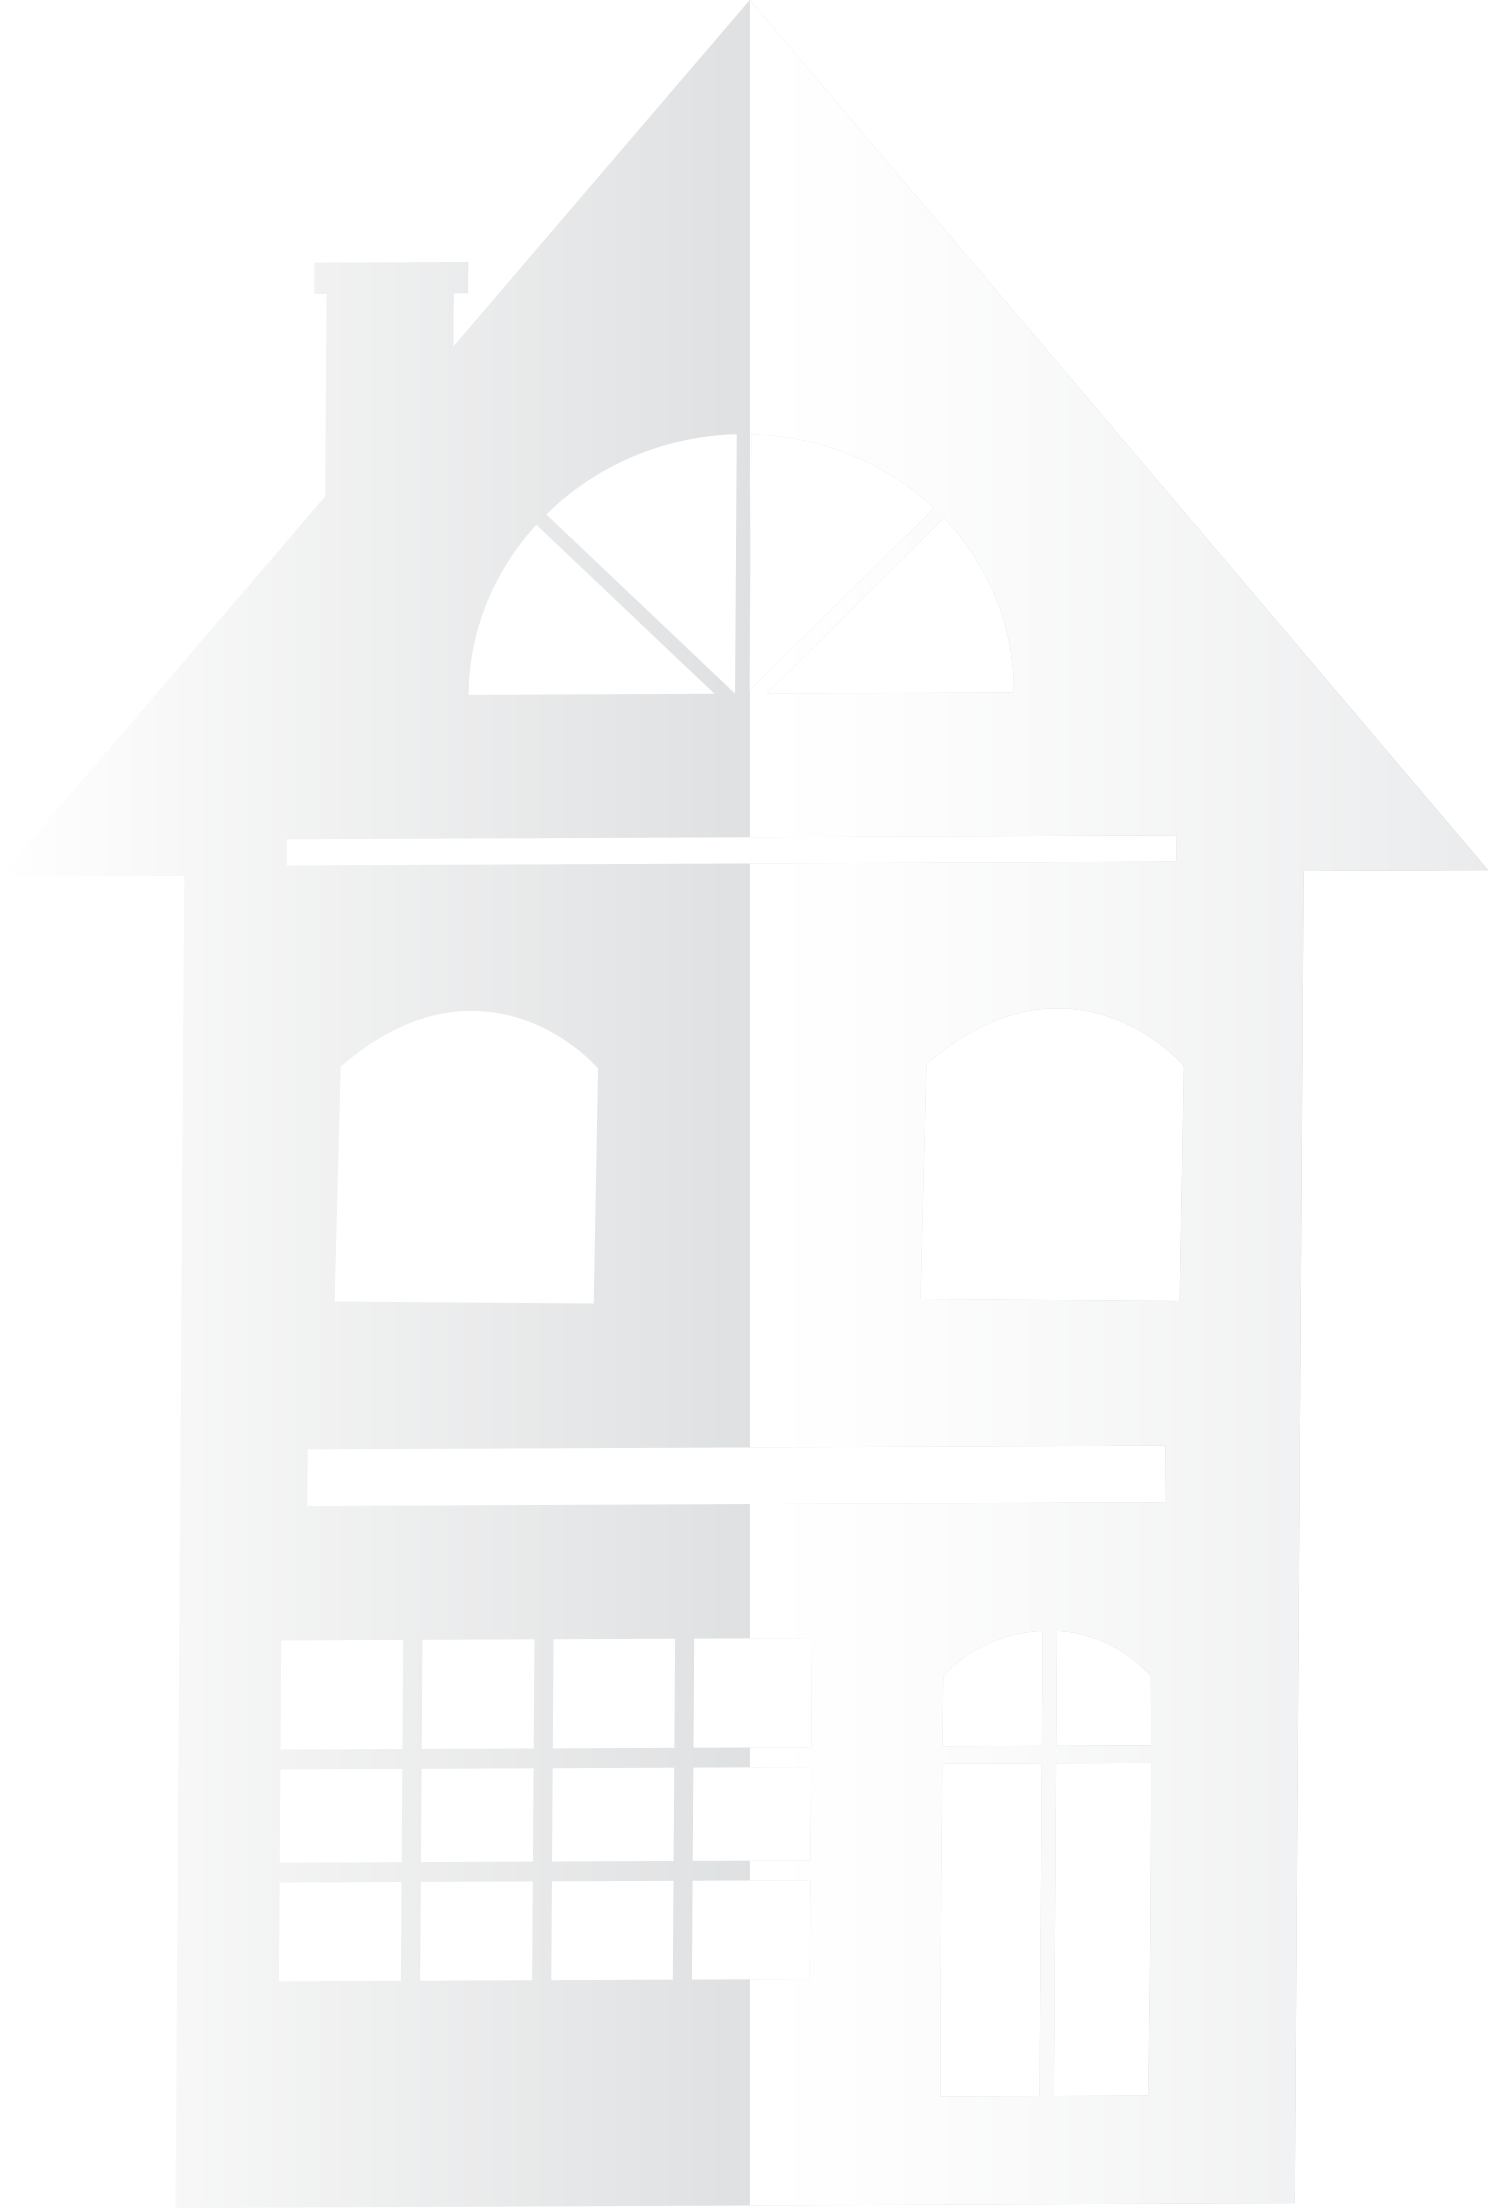 paper house icon